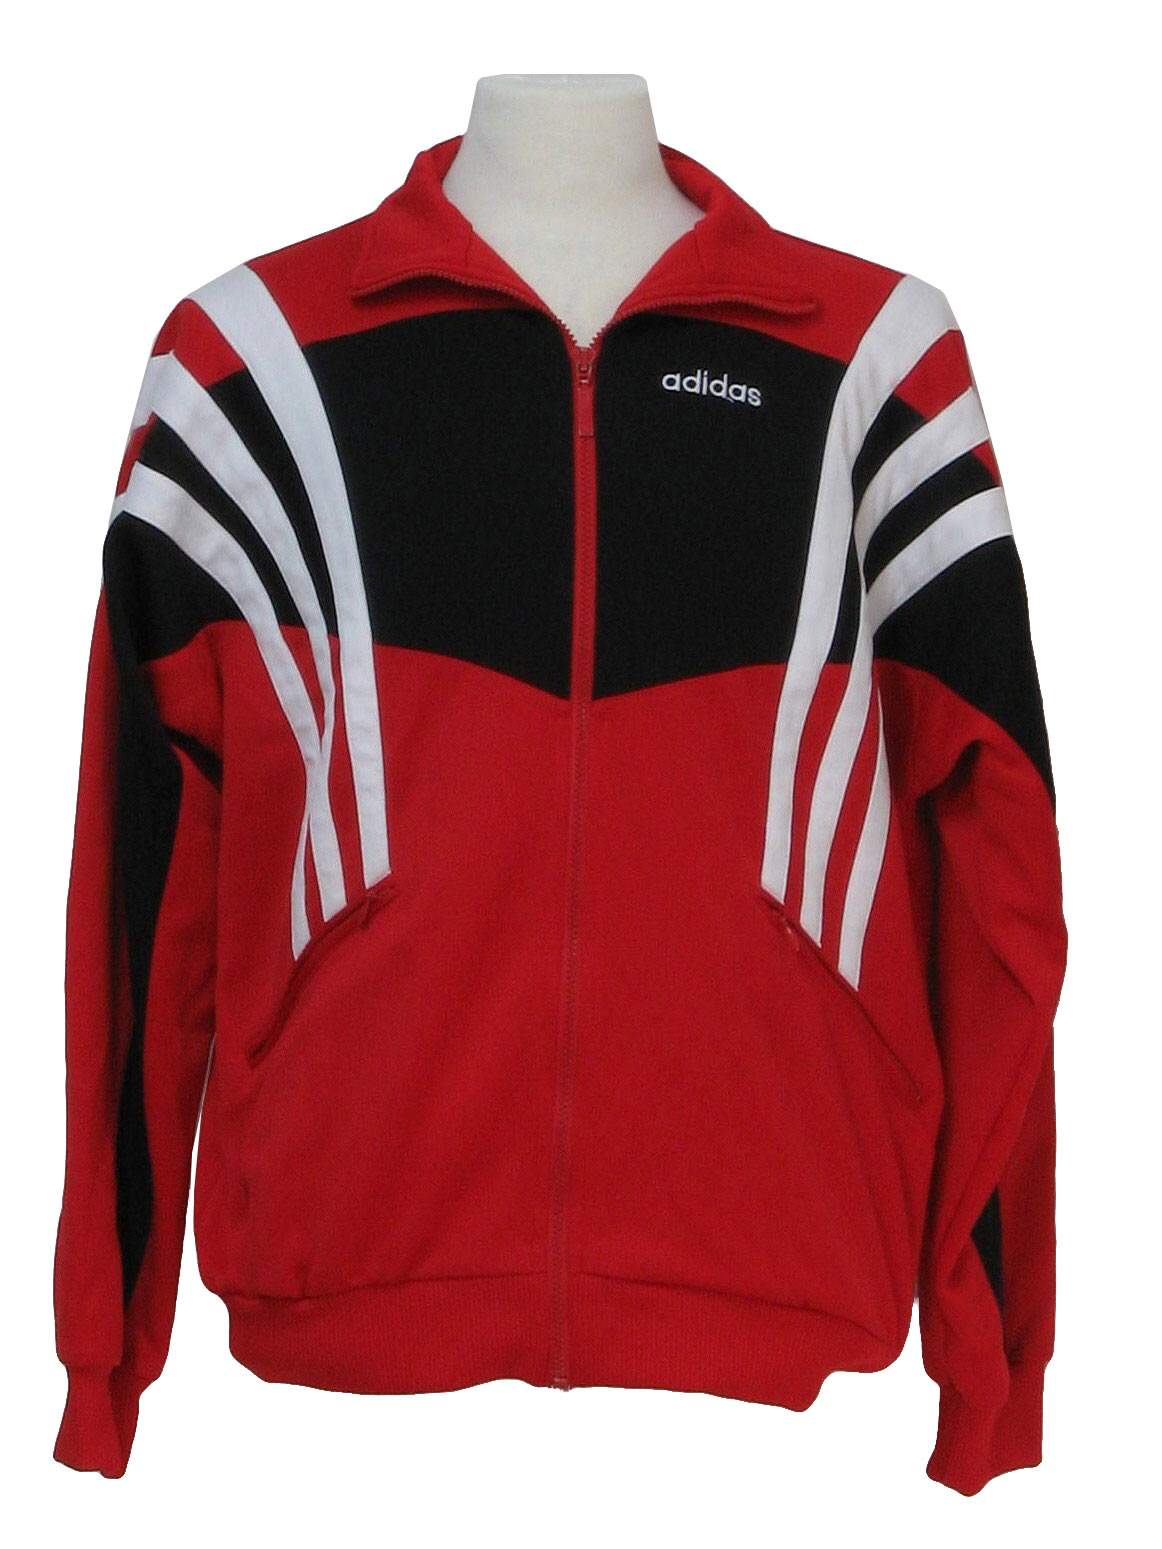 Red black and white adidas jacket